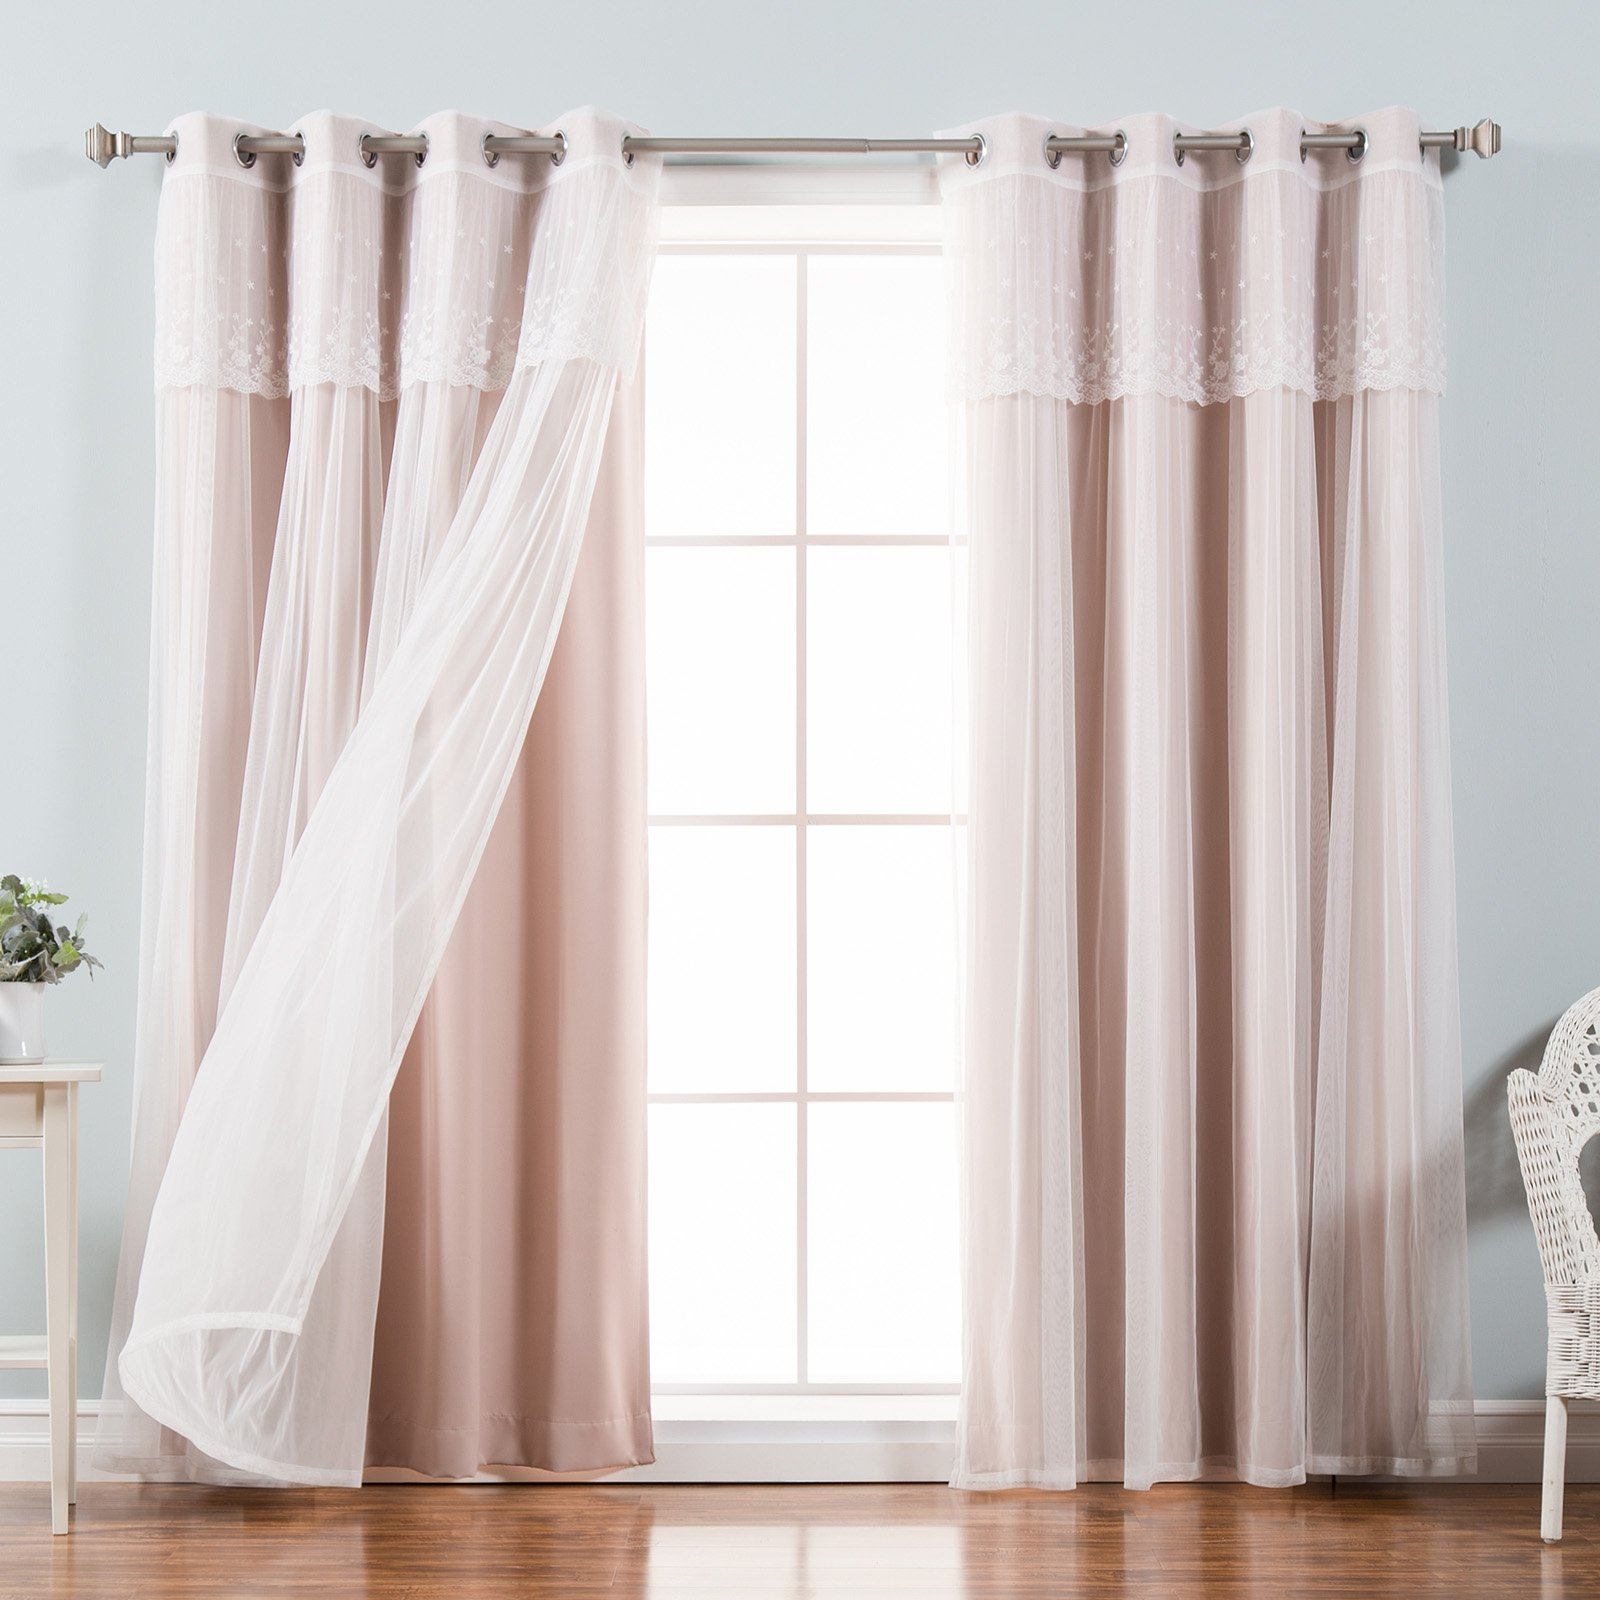 Aurora Home Mix & Match Tulle Sheer With Attached Valance And Blackout 4 Piece Curtain Panel Pair Pertaining To Tulle Sheer With Attached Valance And Blackout 4 Piece Curtain Panel Pairs (View 6 of 30)